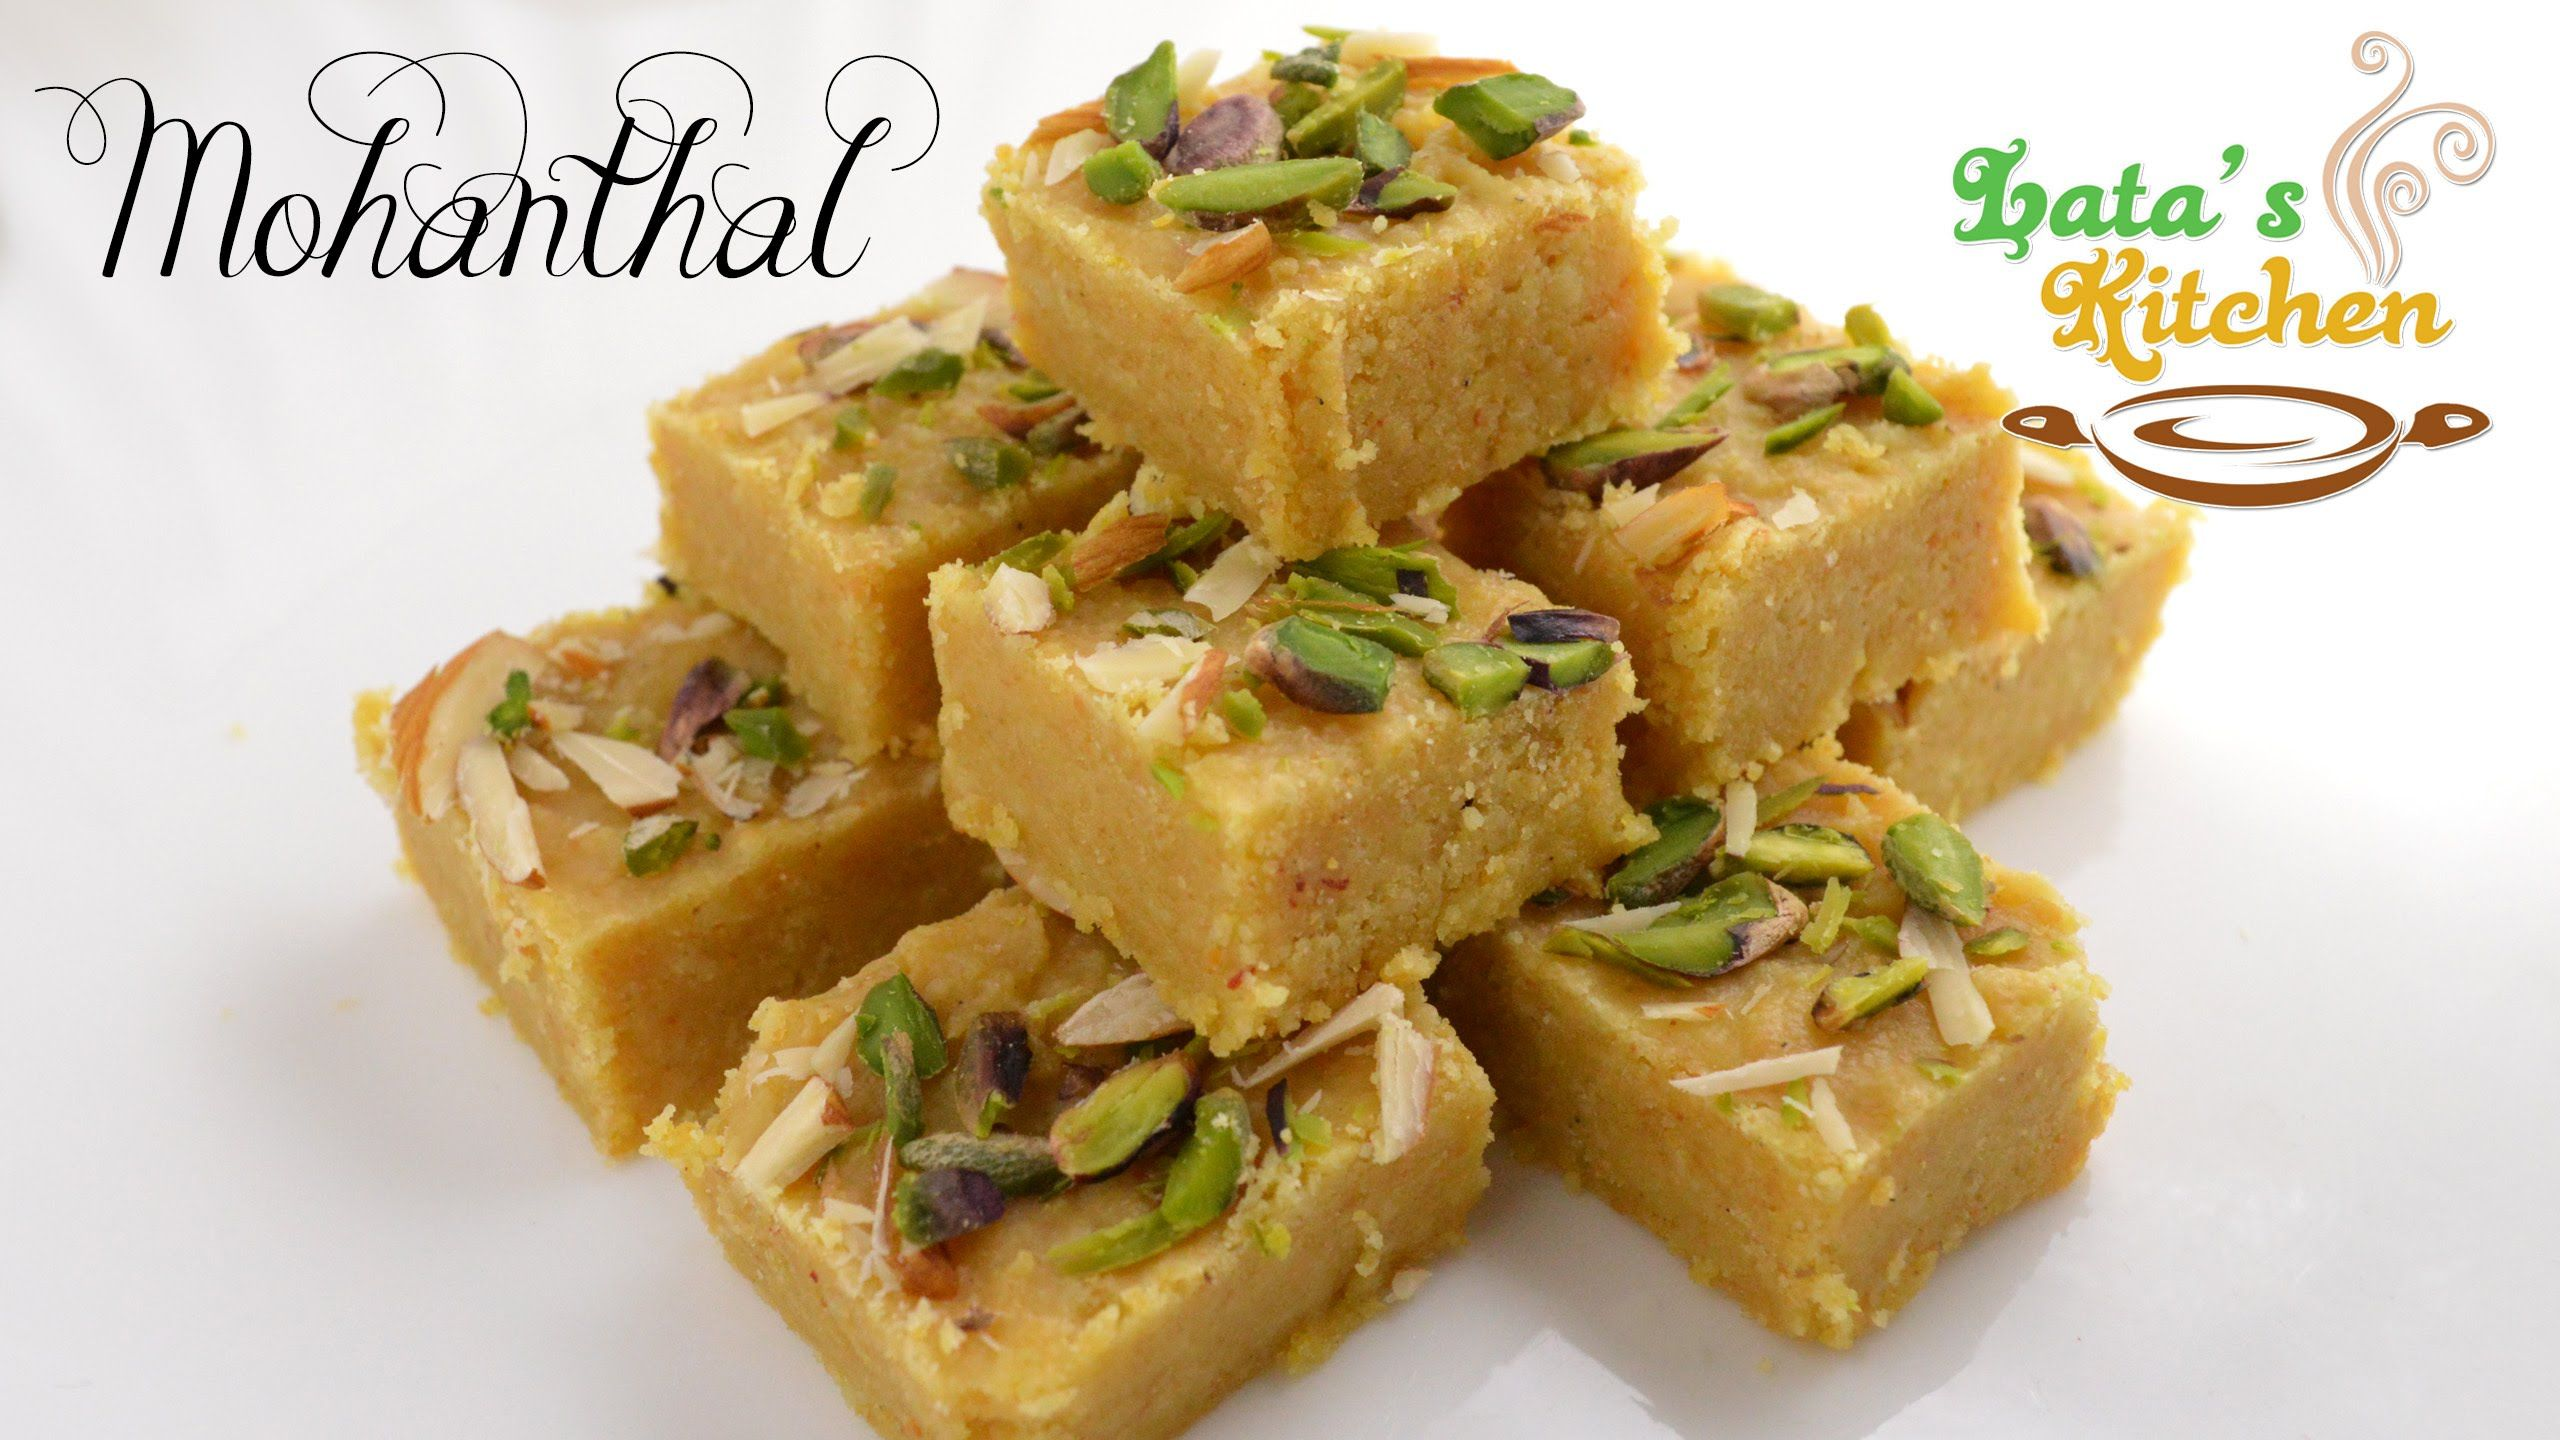 Mohanthal recipe video gujarati indian vegetarian fudge recipe in mohanthal recipe video gujarati indian vegetarian fudge recipe in hindi with english subtitles forumfinder Gallery